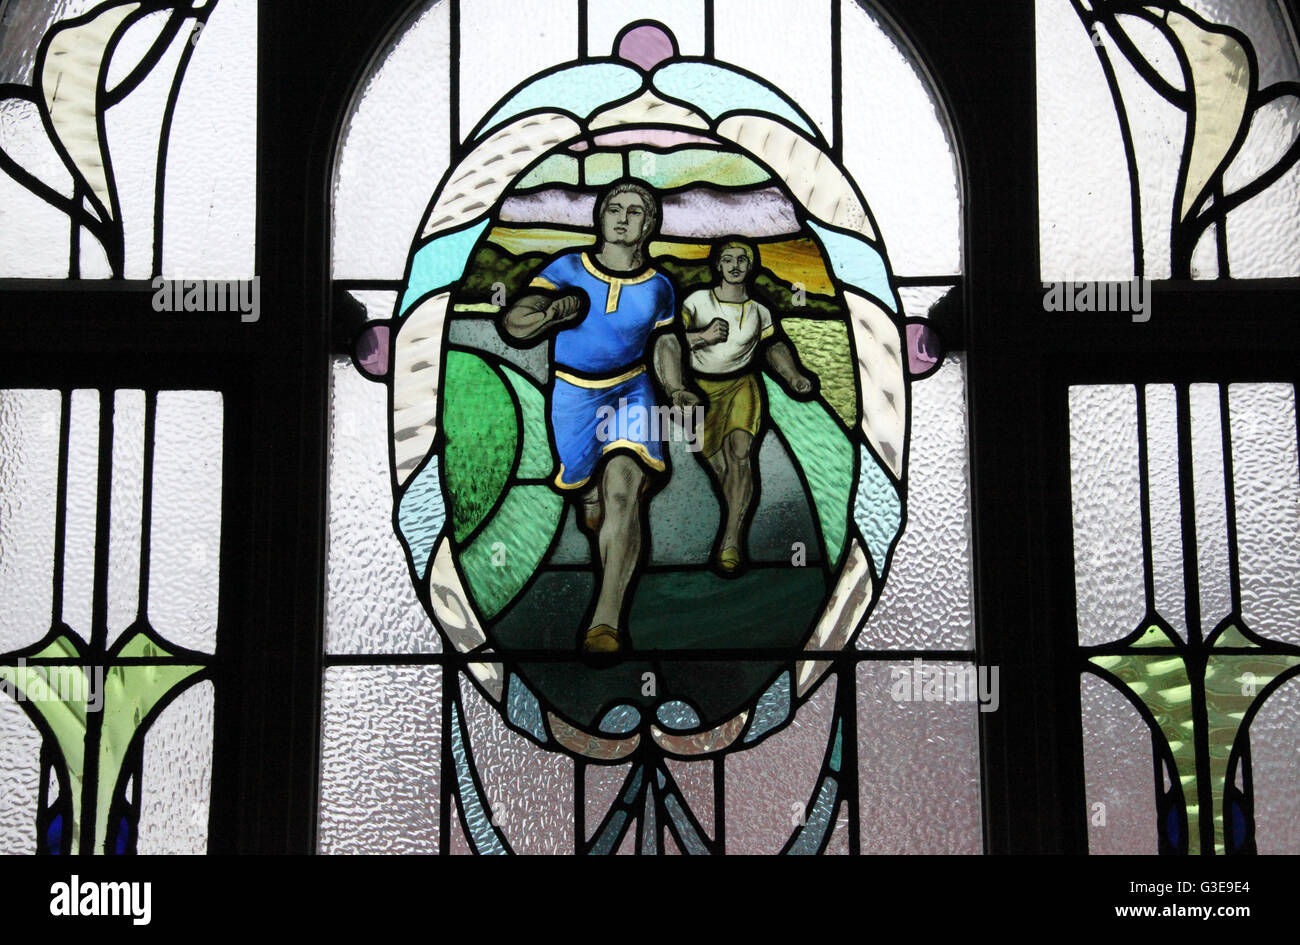 Sporting themed stained glass window at the restored Victoria Baths in Manchester - Stock Image